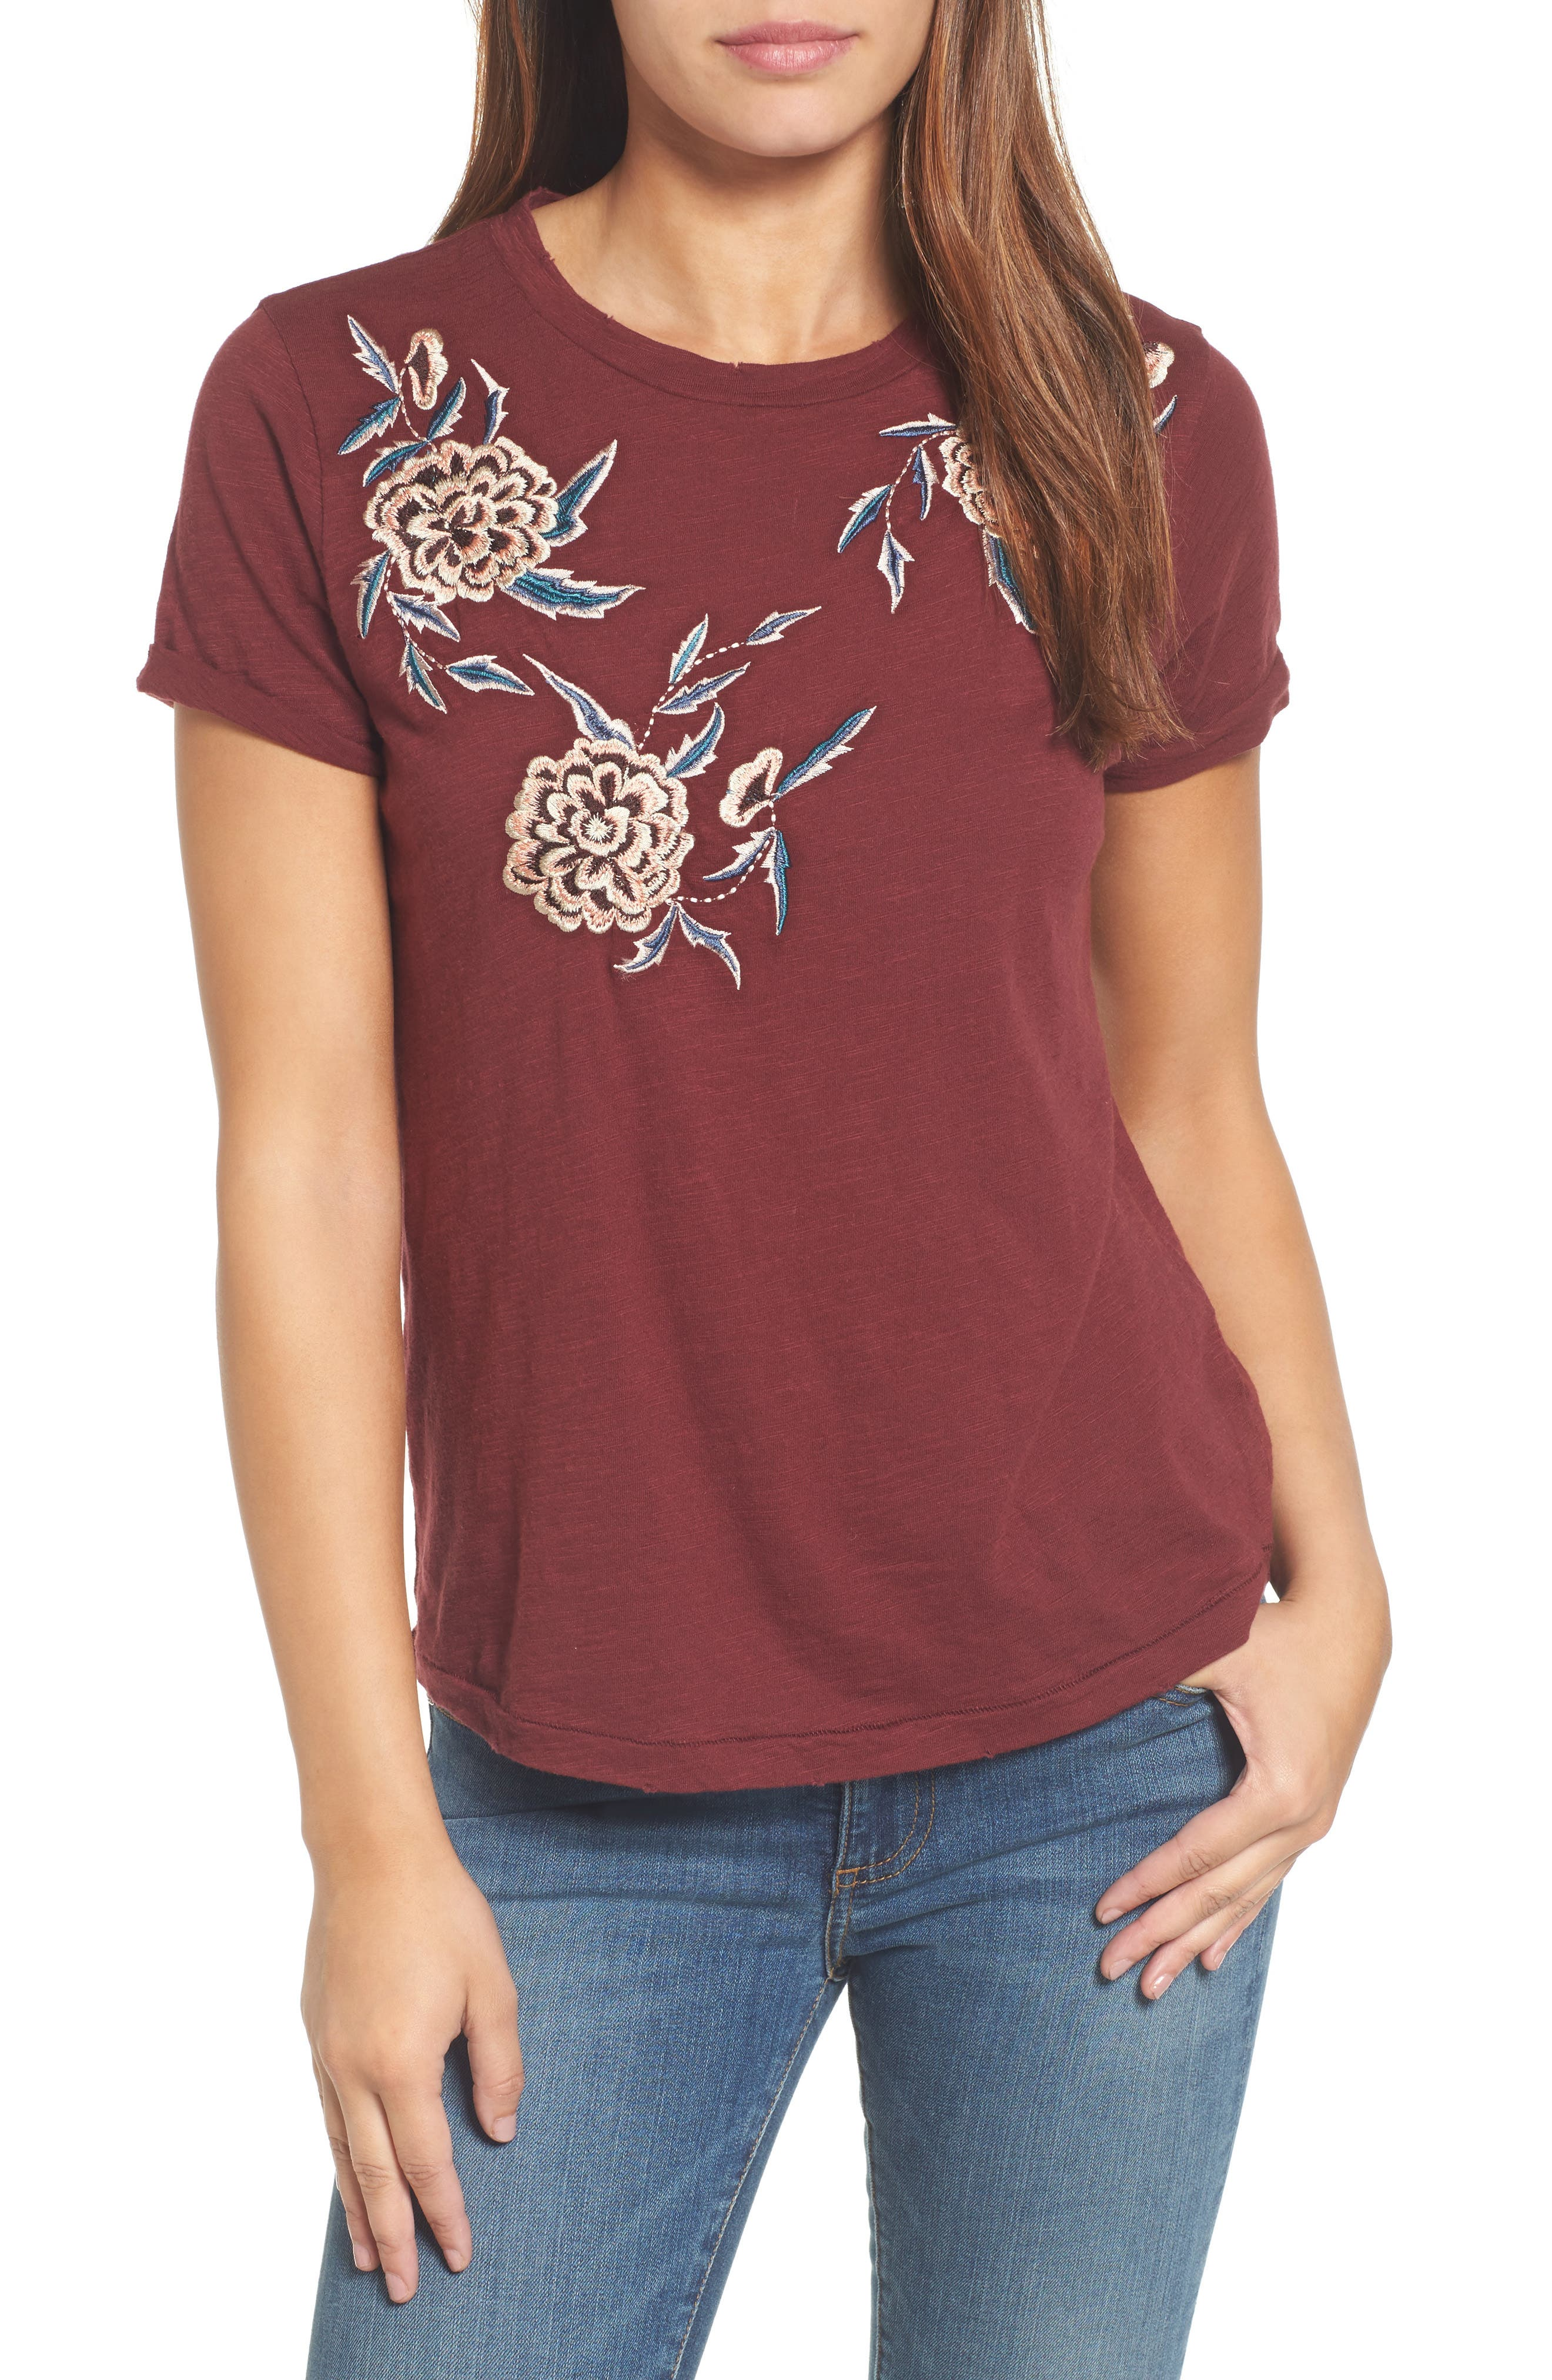 Main Image - Lucky Brand Floral Embroidered Tee